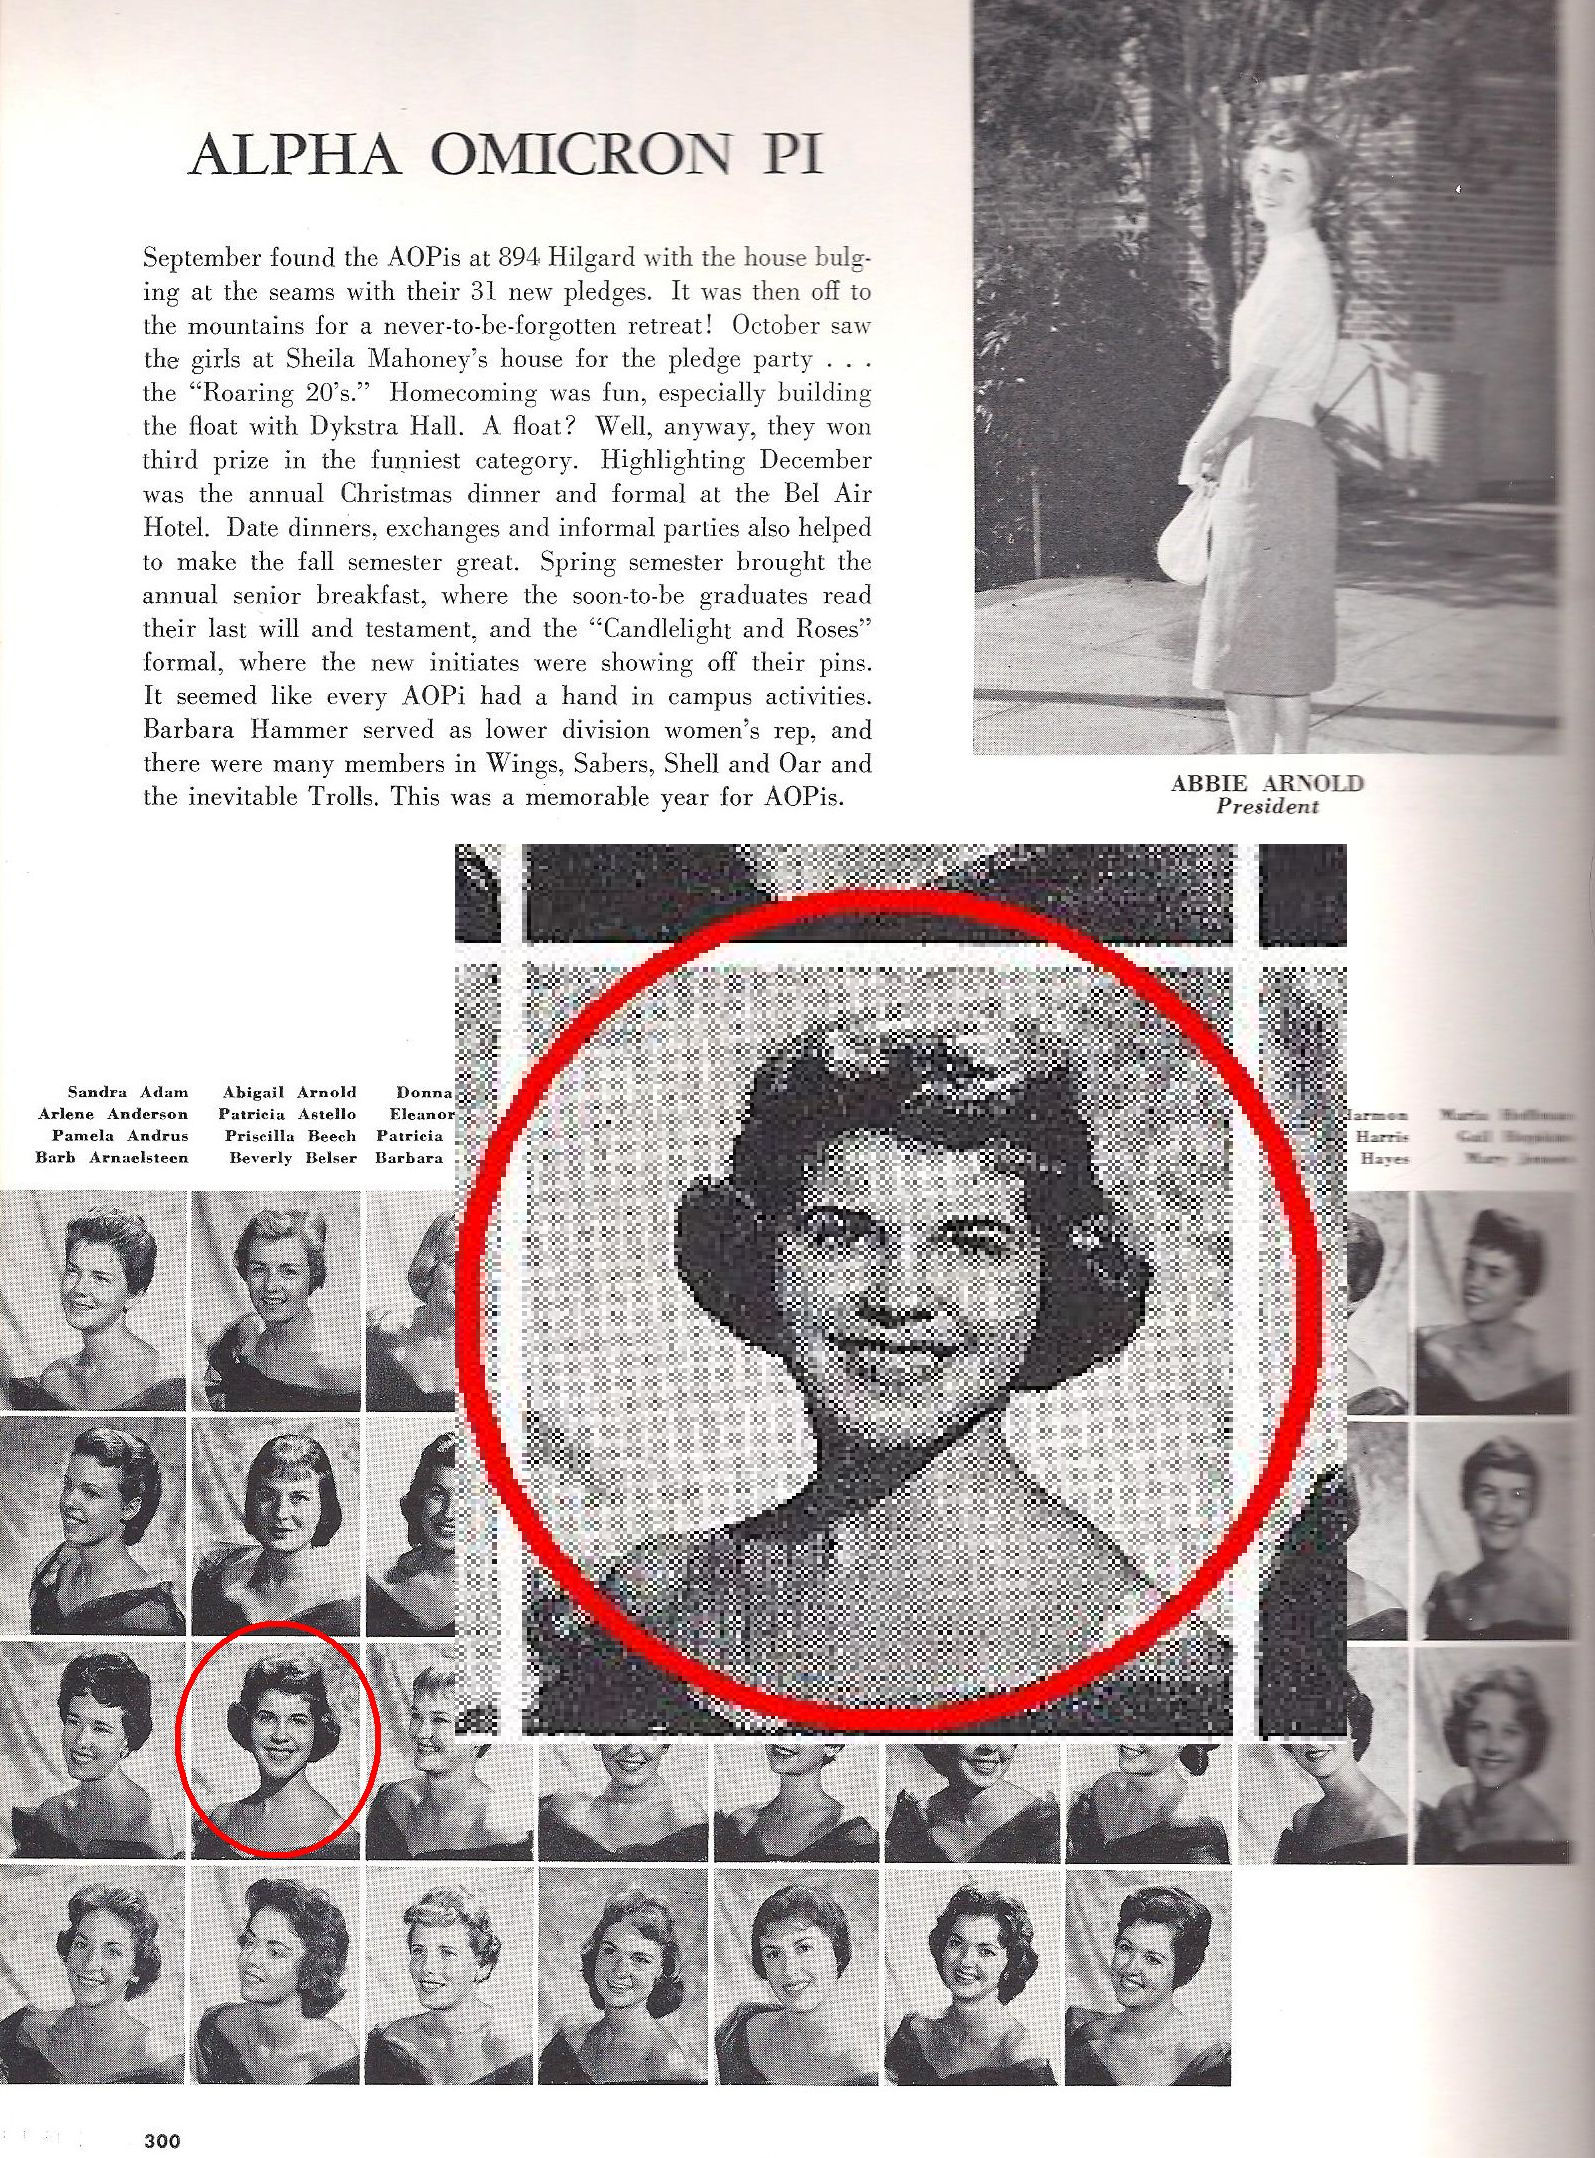 Priscilla Palmer's (nee: Beech) 1960 UCLA yearbook photo, where she learned about the Munsell Color System that would guide her in her future careers.